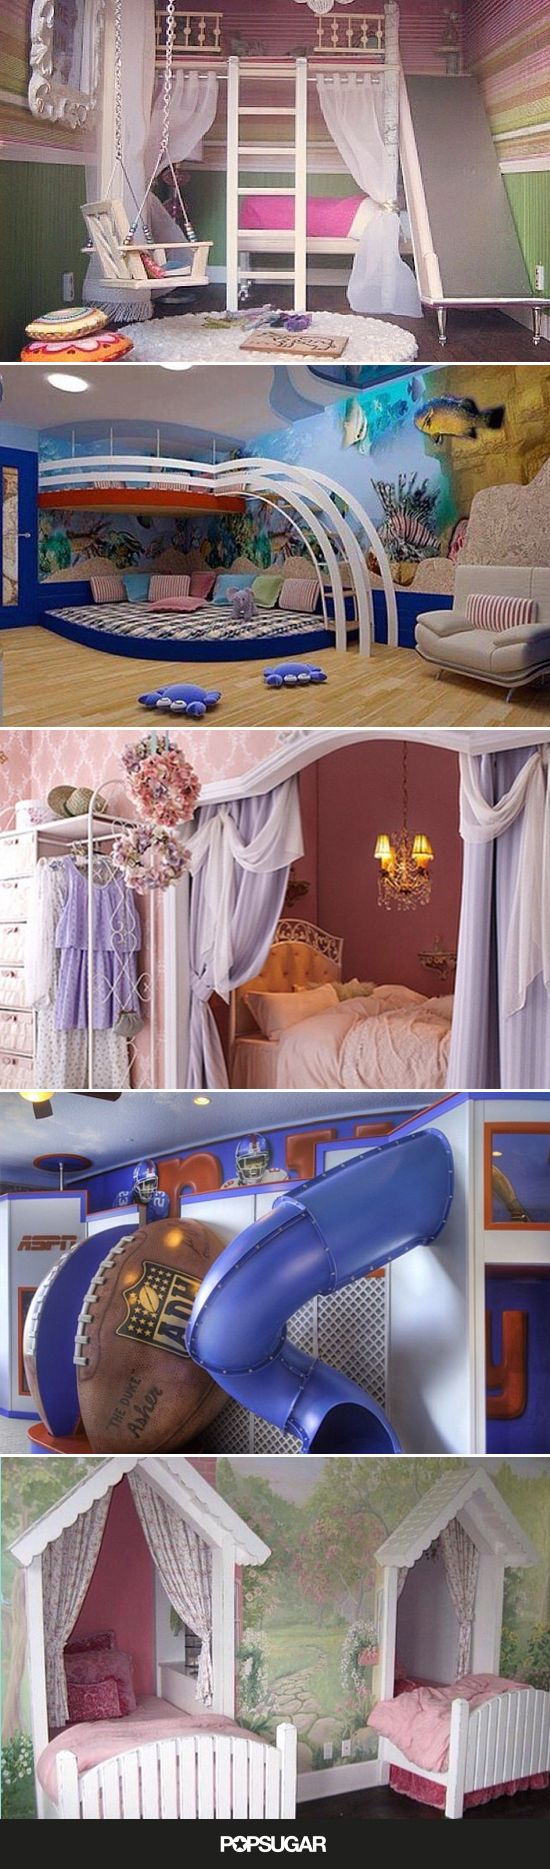 Awesome Bedrooms best 25+ amazing bedrooms ideas on pinterest | awesome beds, dream